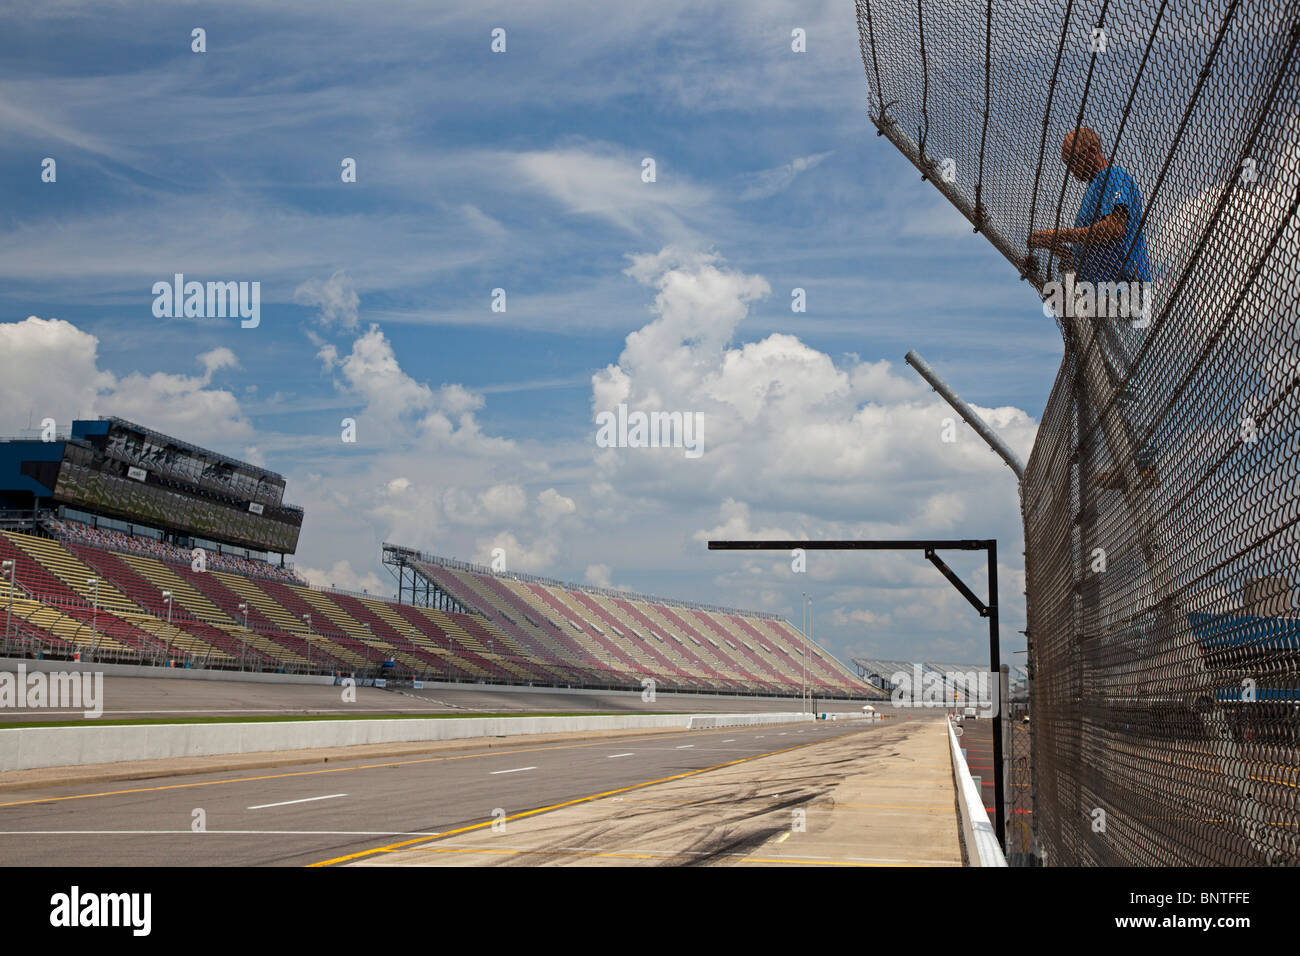 Worker Repairs Fence at Michigan International Speedway - Stock Image